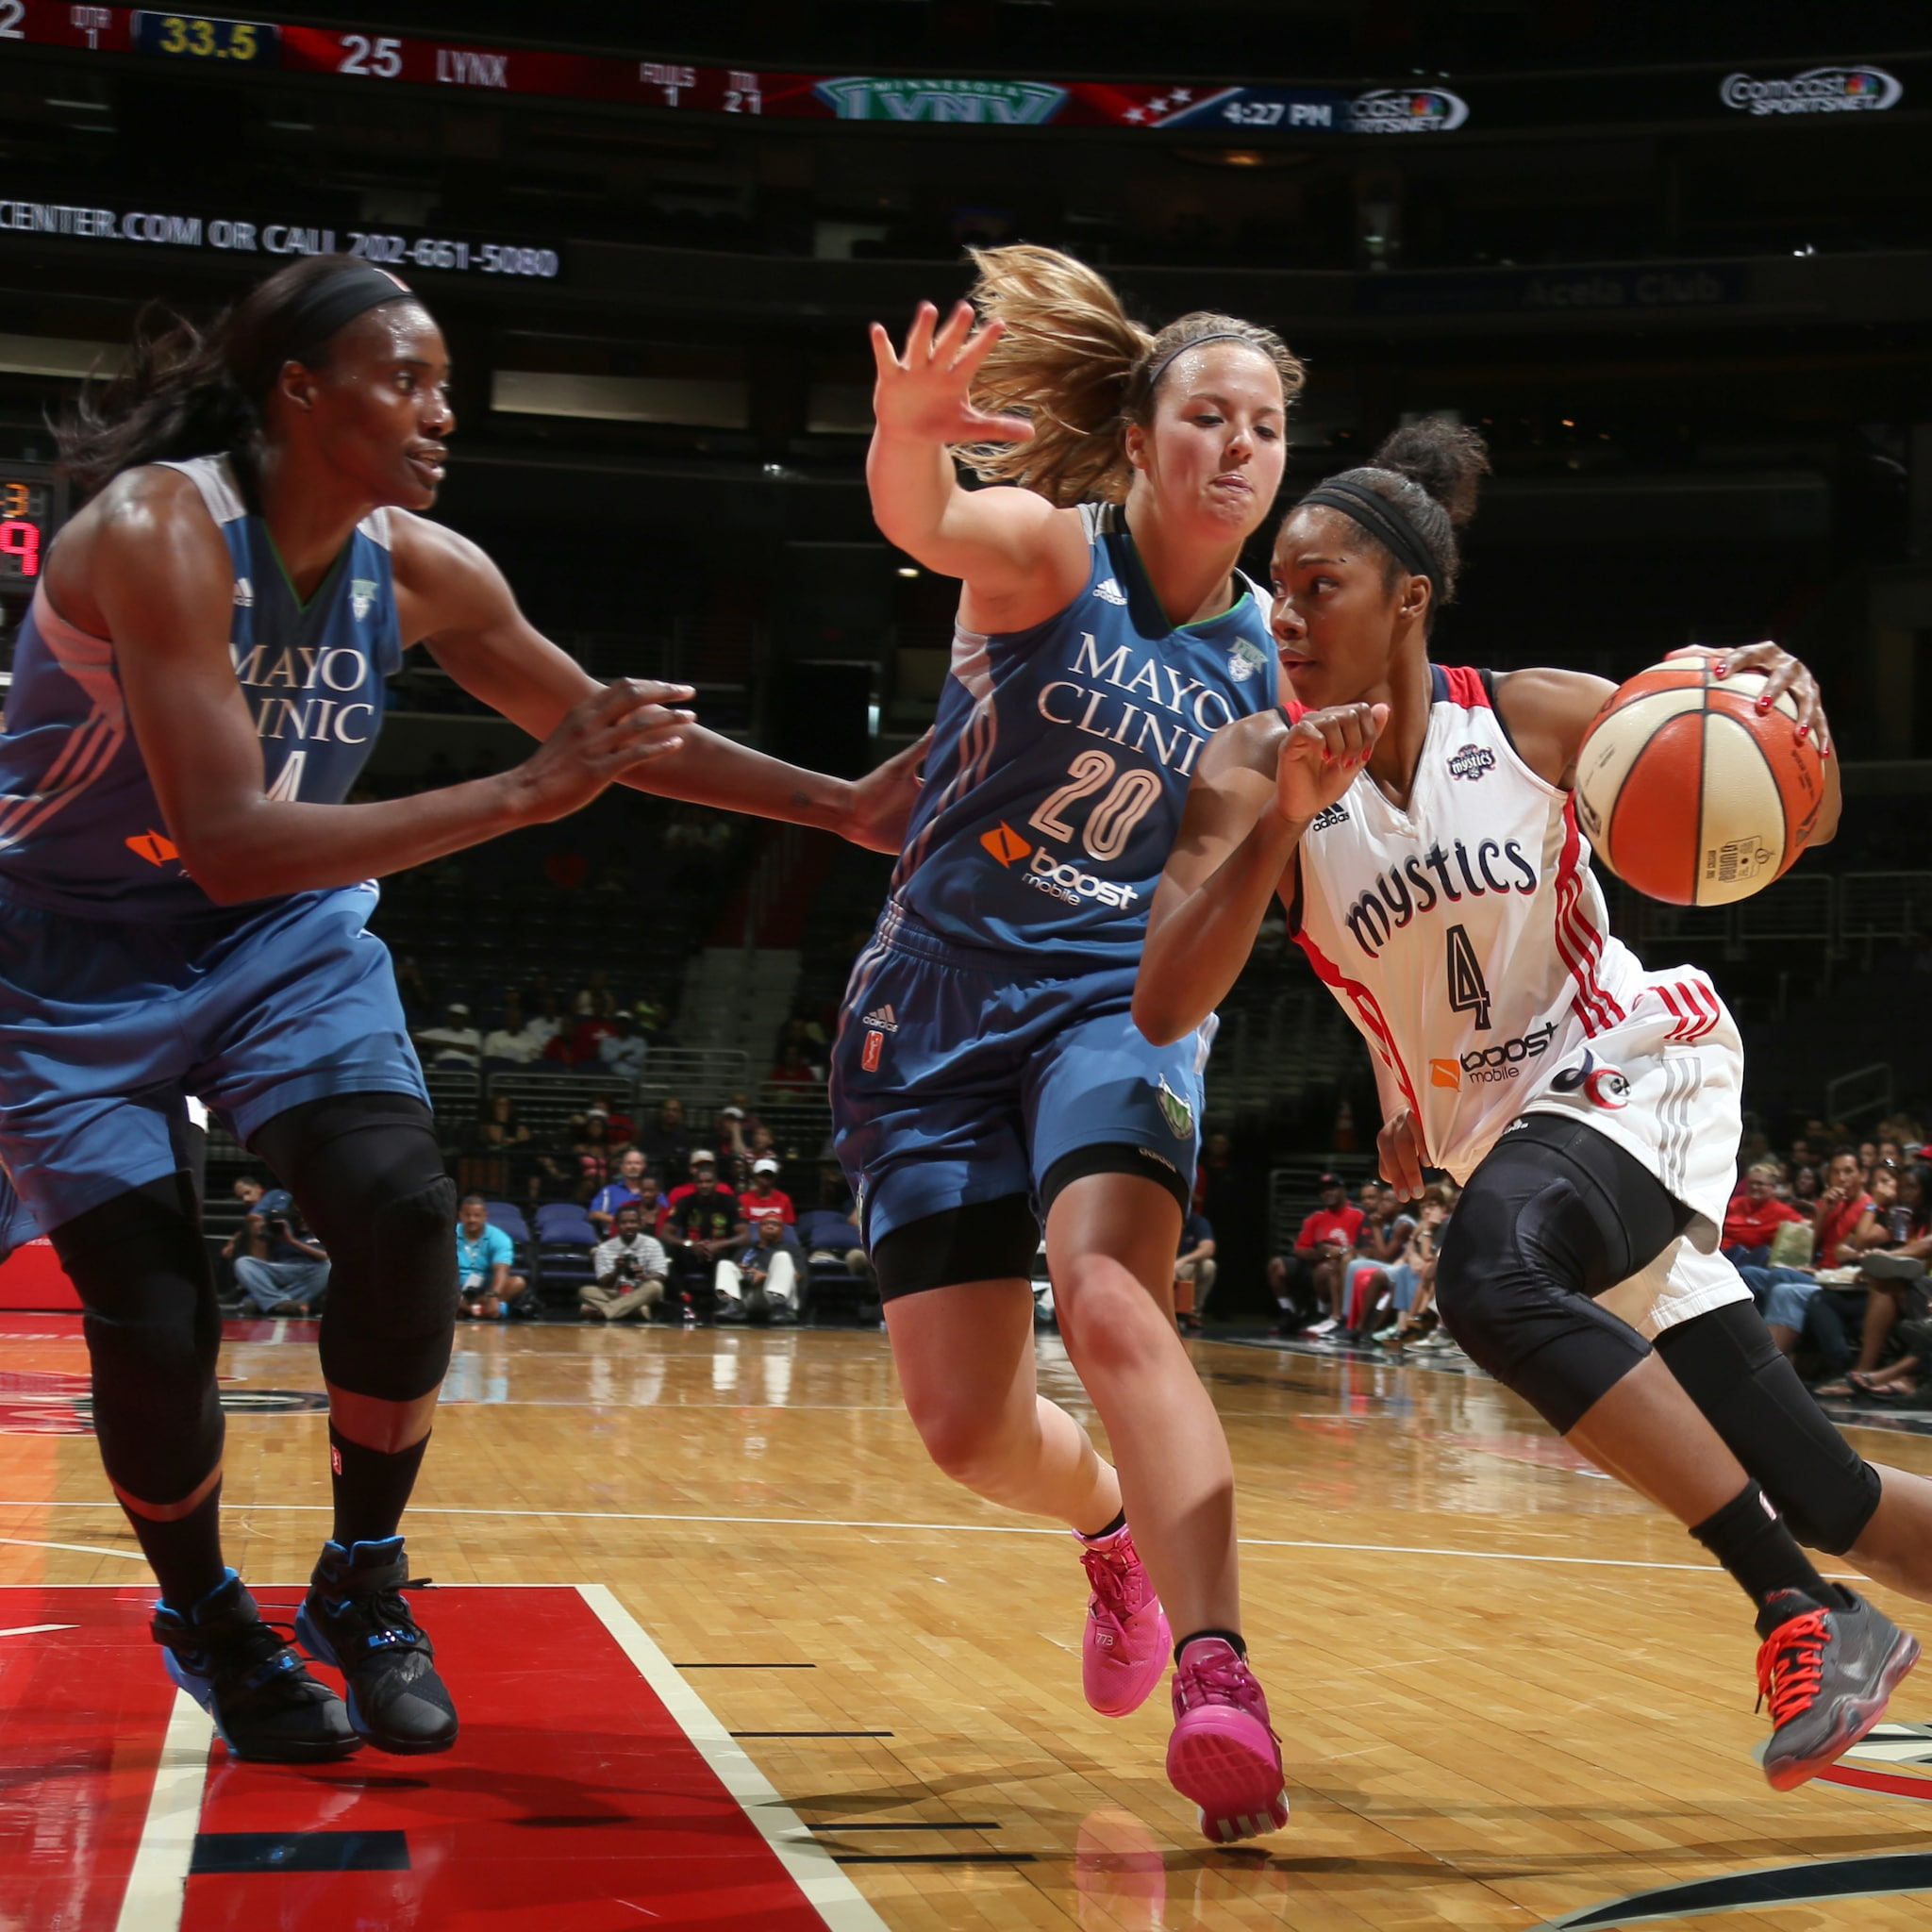 Mystics guard Tayler Hill struggled off the bench for Washington, scoring just five points on 1-of-7 (14 percent) shooting.